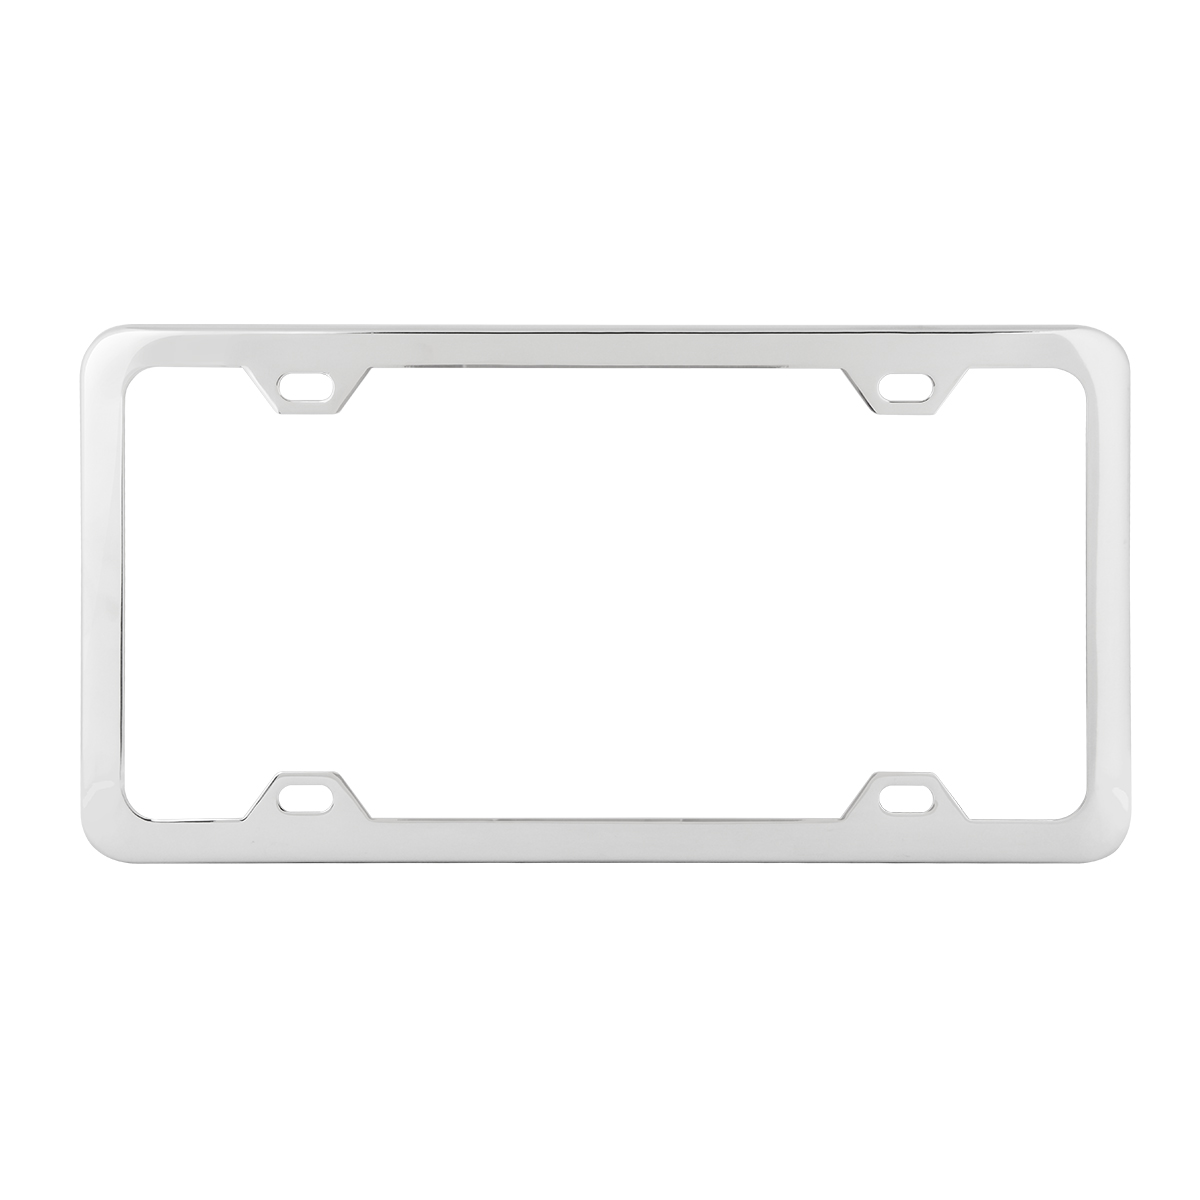 60413 Plain Polished Stainless Steel 4 Hole License Plate Frame